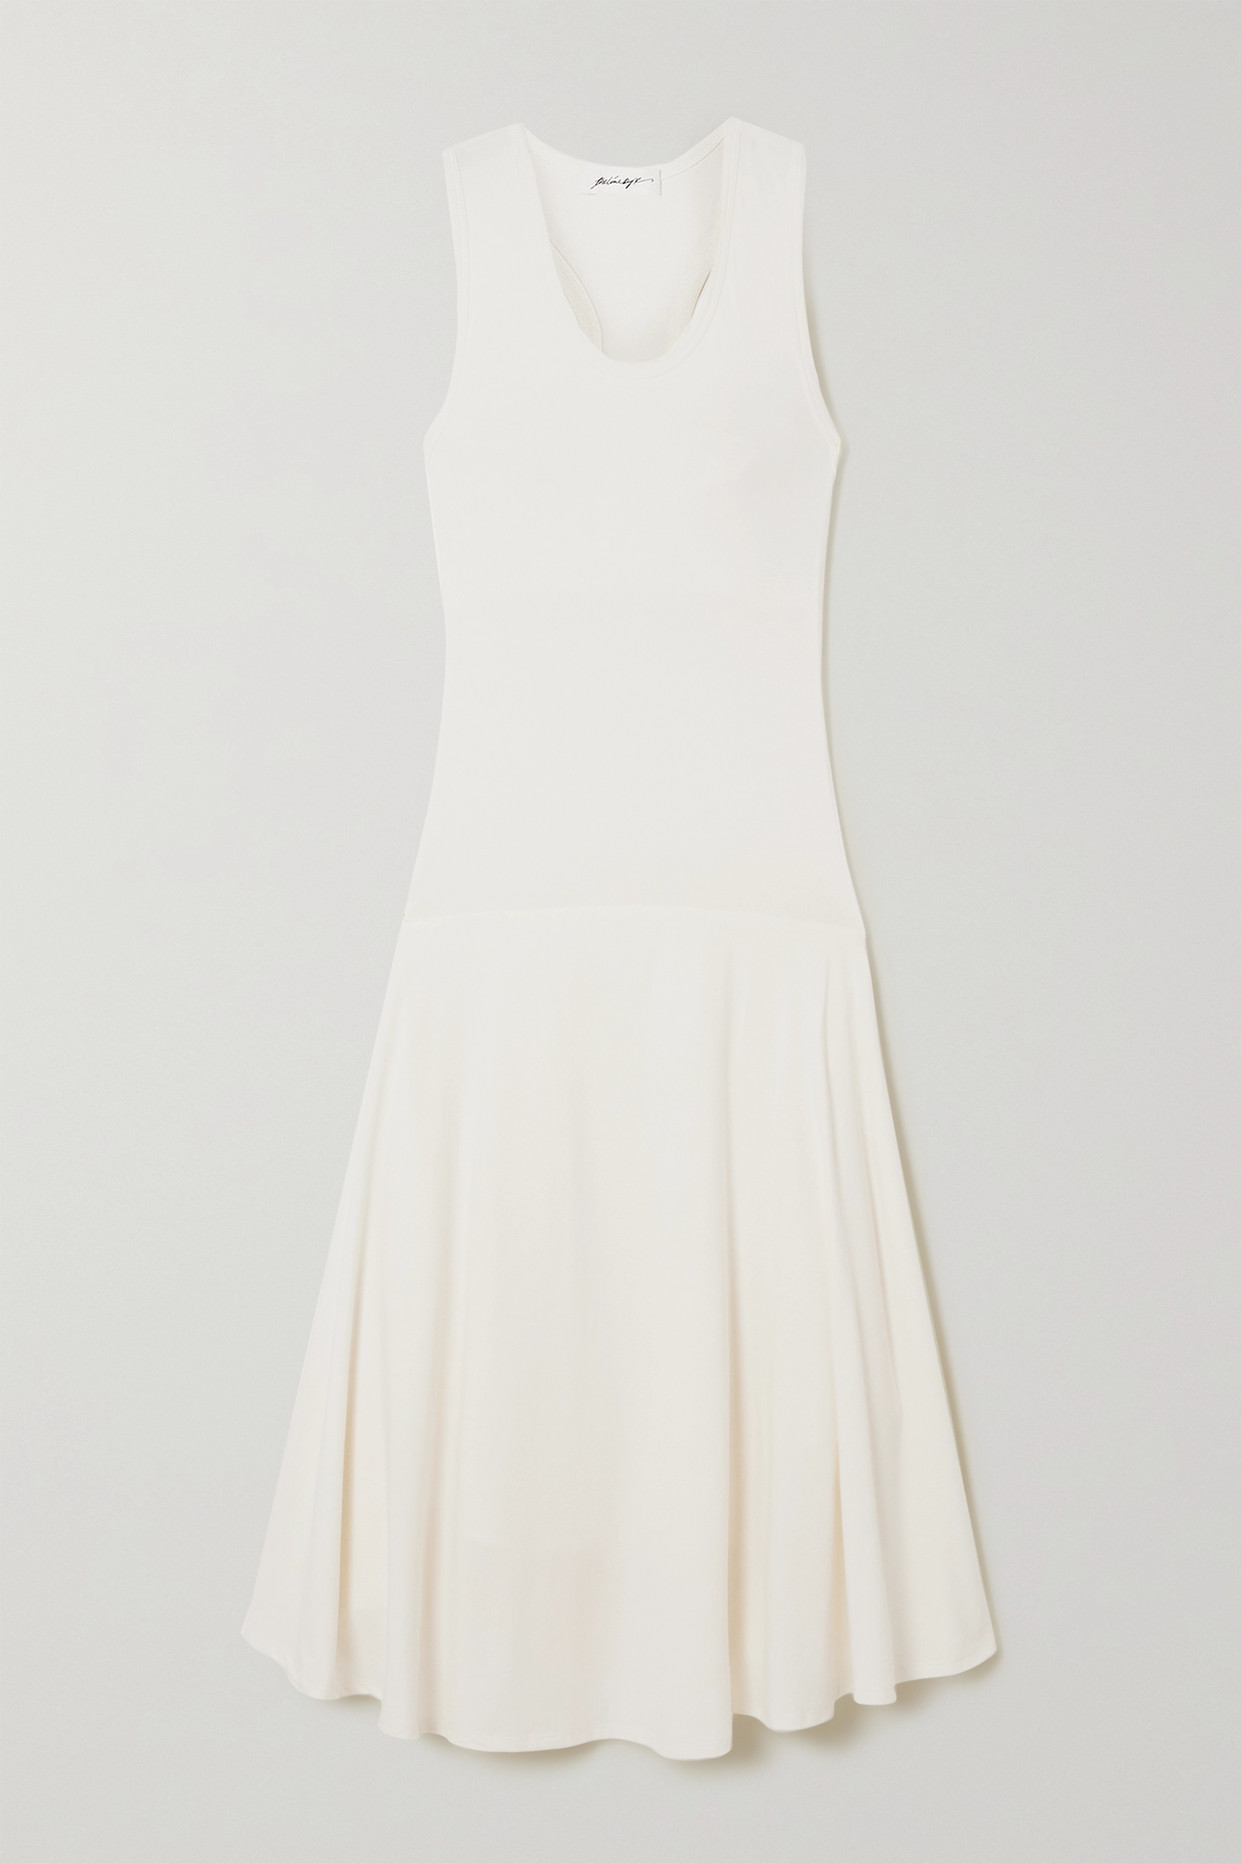 THE LINE BY K - Cian Cutout Stretch-cotton And Modal-blend Jersey Dress - Off-white - x small